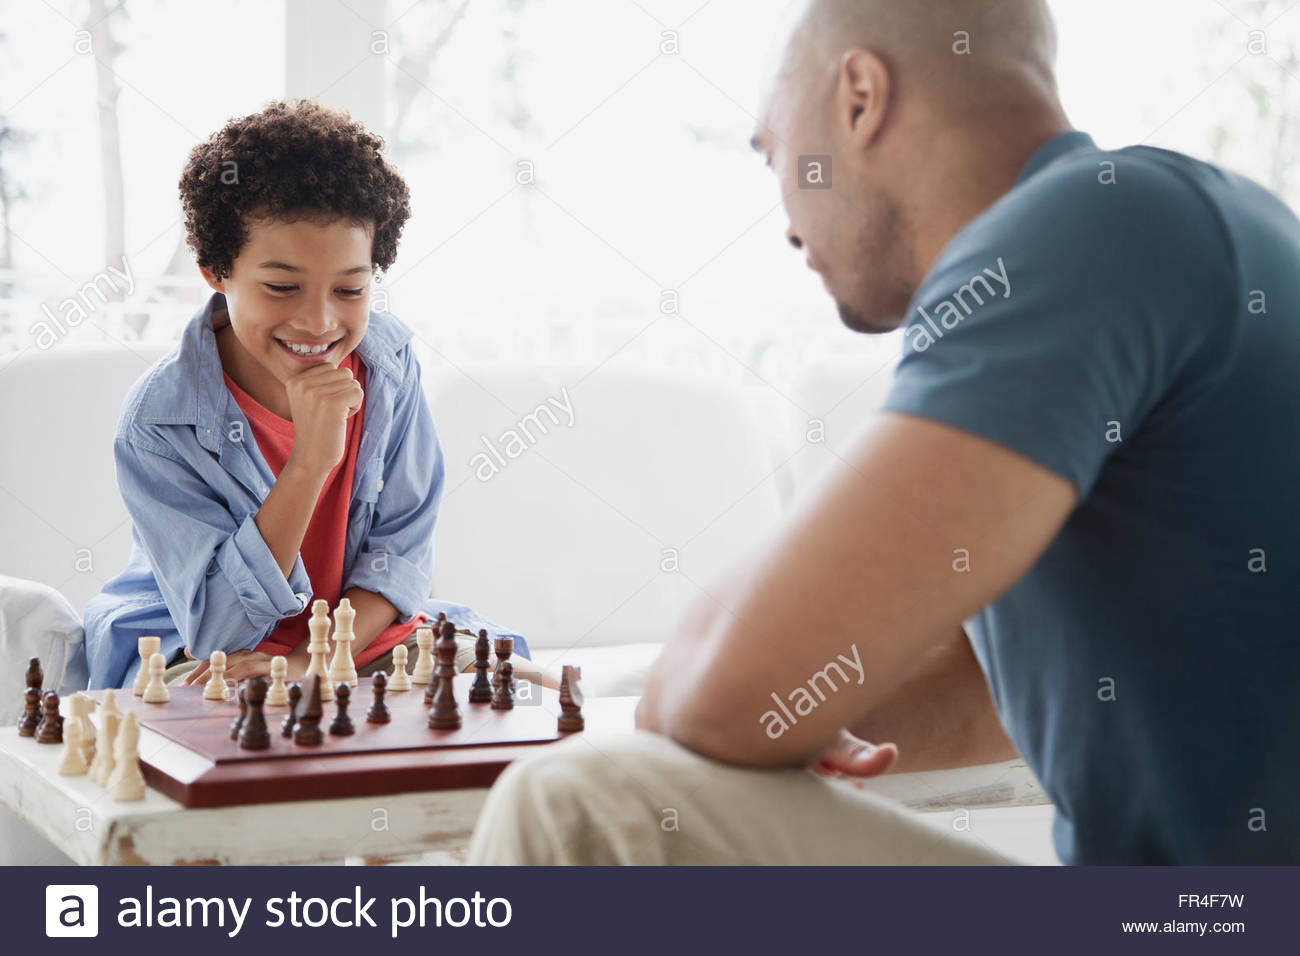 father and son enjoying a game of chess - Stock Image